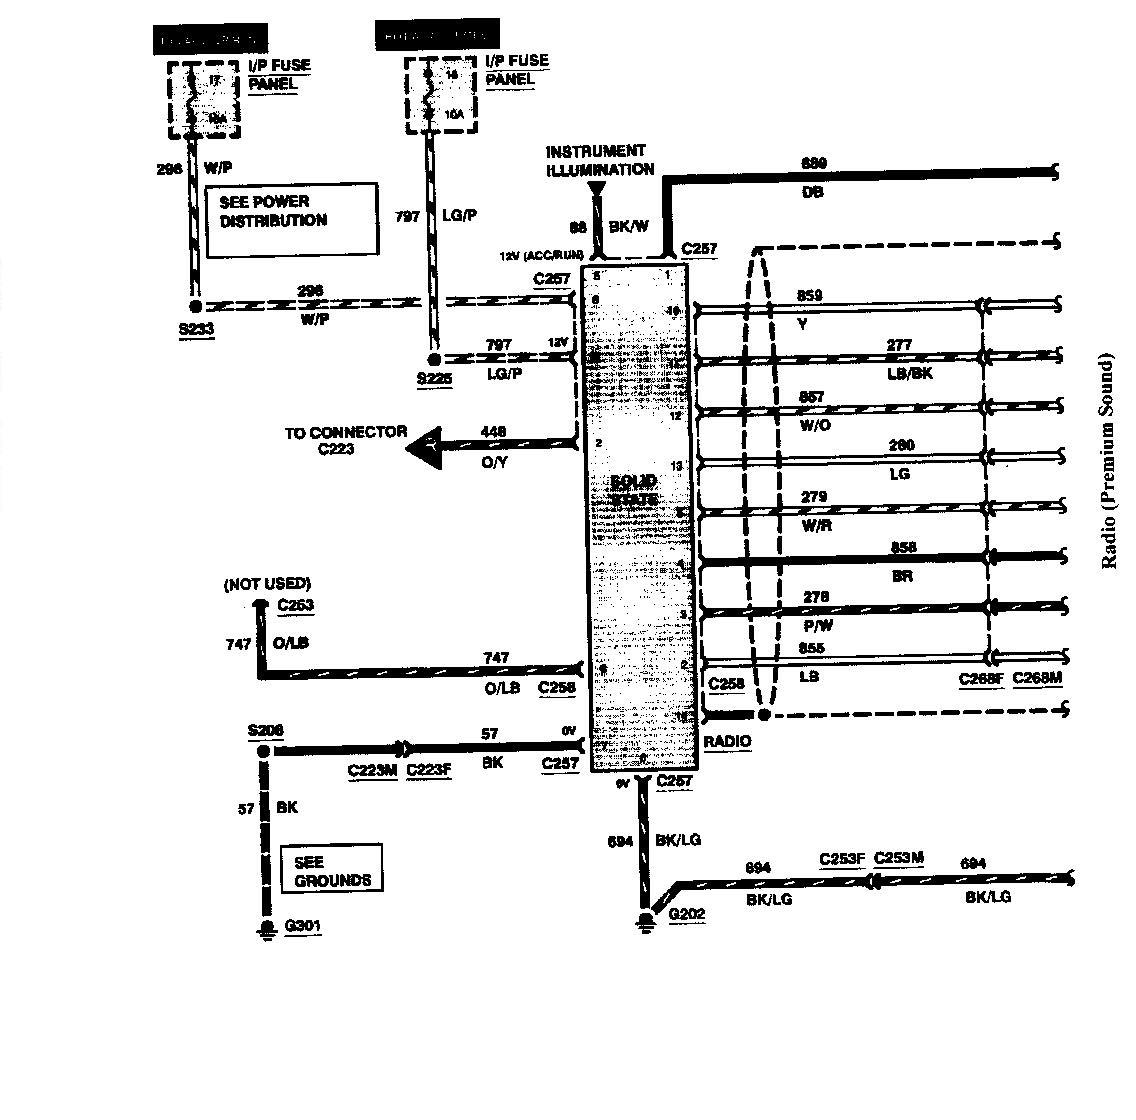 95Mark8 Premium Sound Wiring 95 mark 8 jbl wiring diagram needed lincolns online message forum 2001 lincoln continental radio wiring diagram at aneh.co